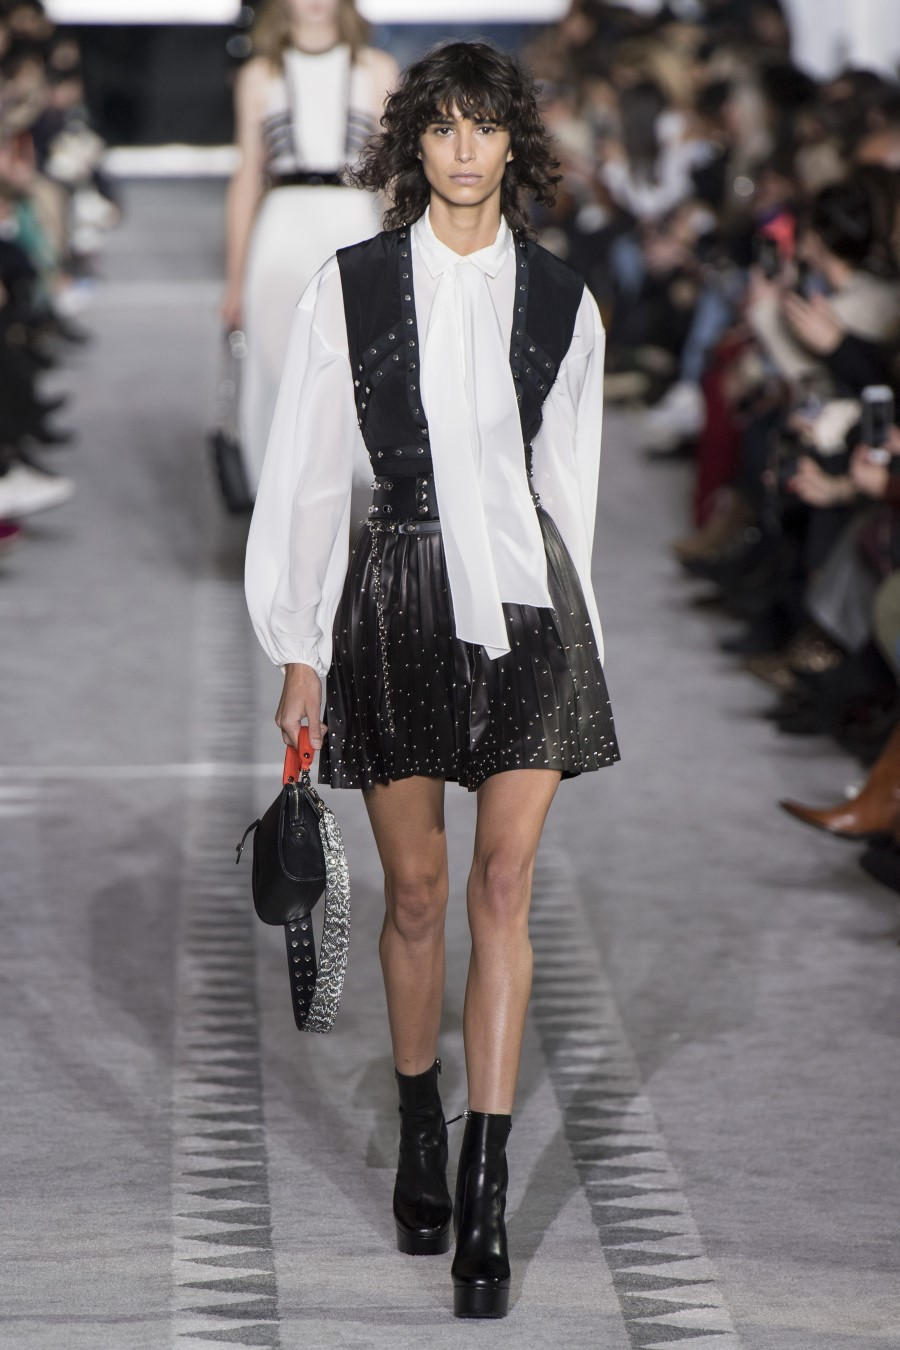 Longchamp Fall Winter 2019 - New York Fashion Week